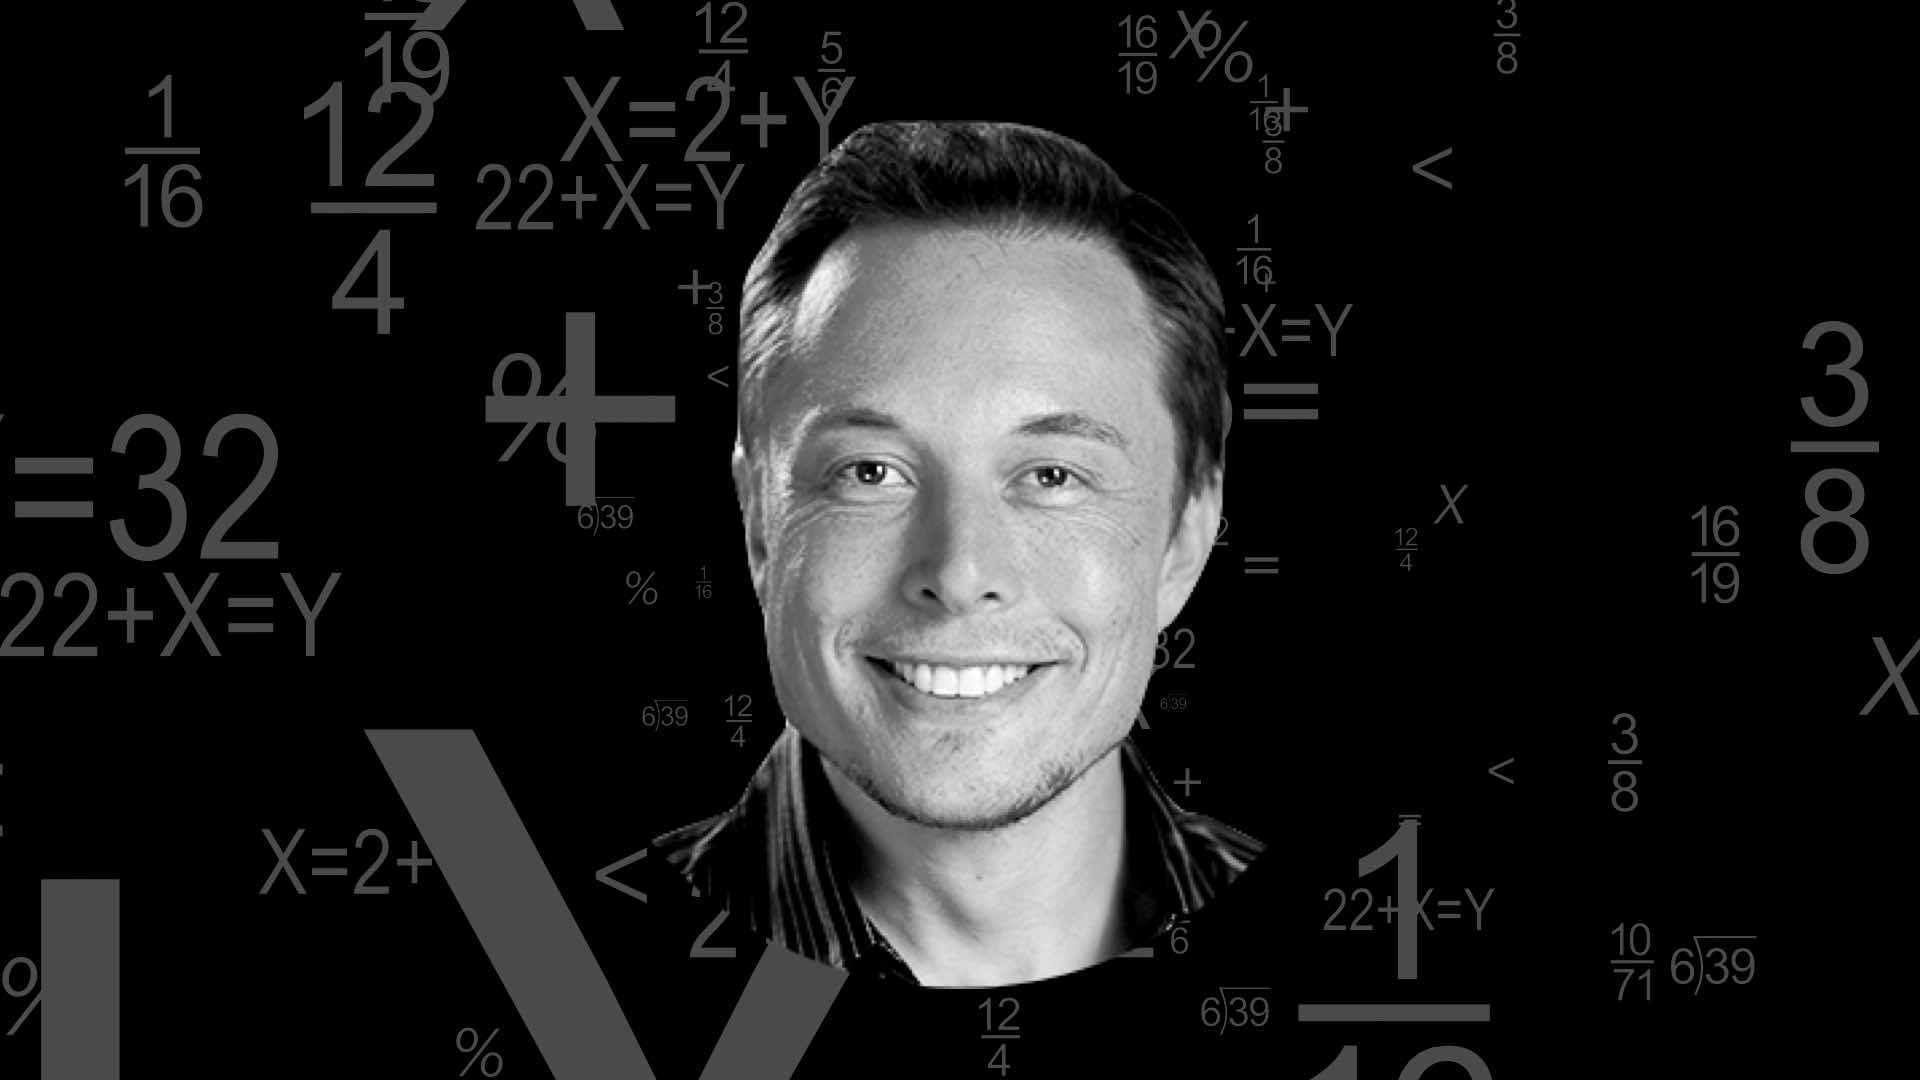 Elon Musk Wallpapers 86 Images